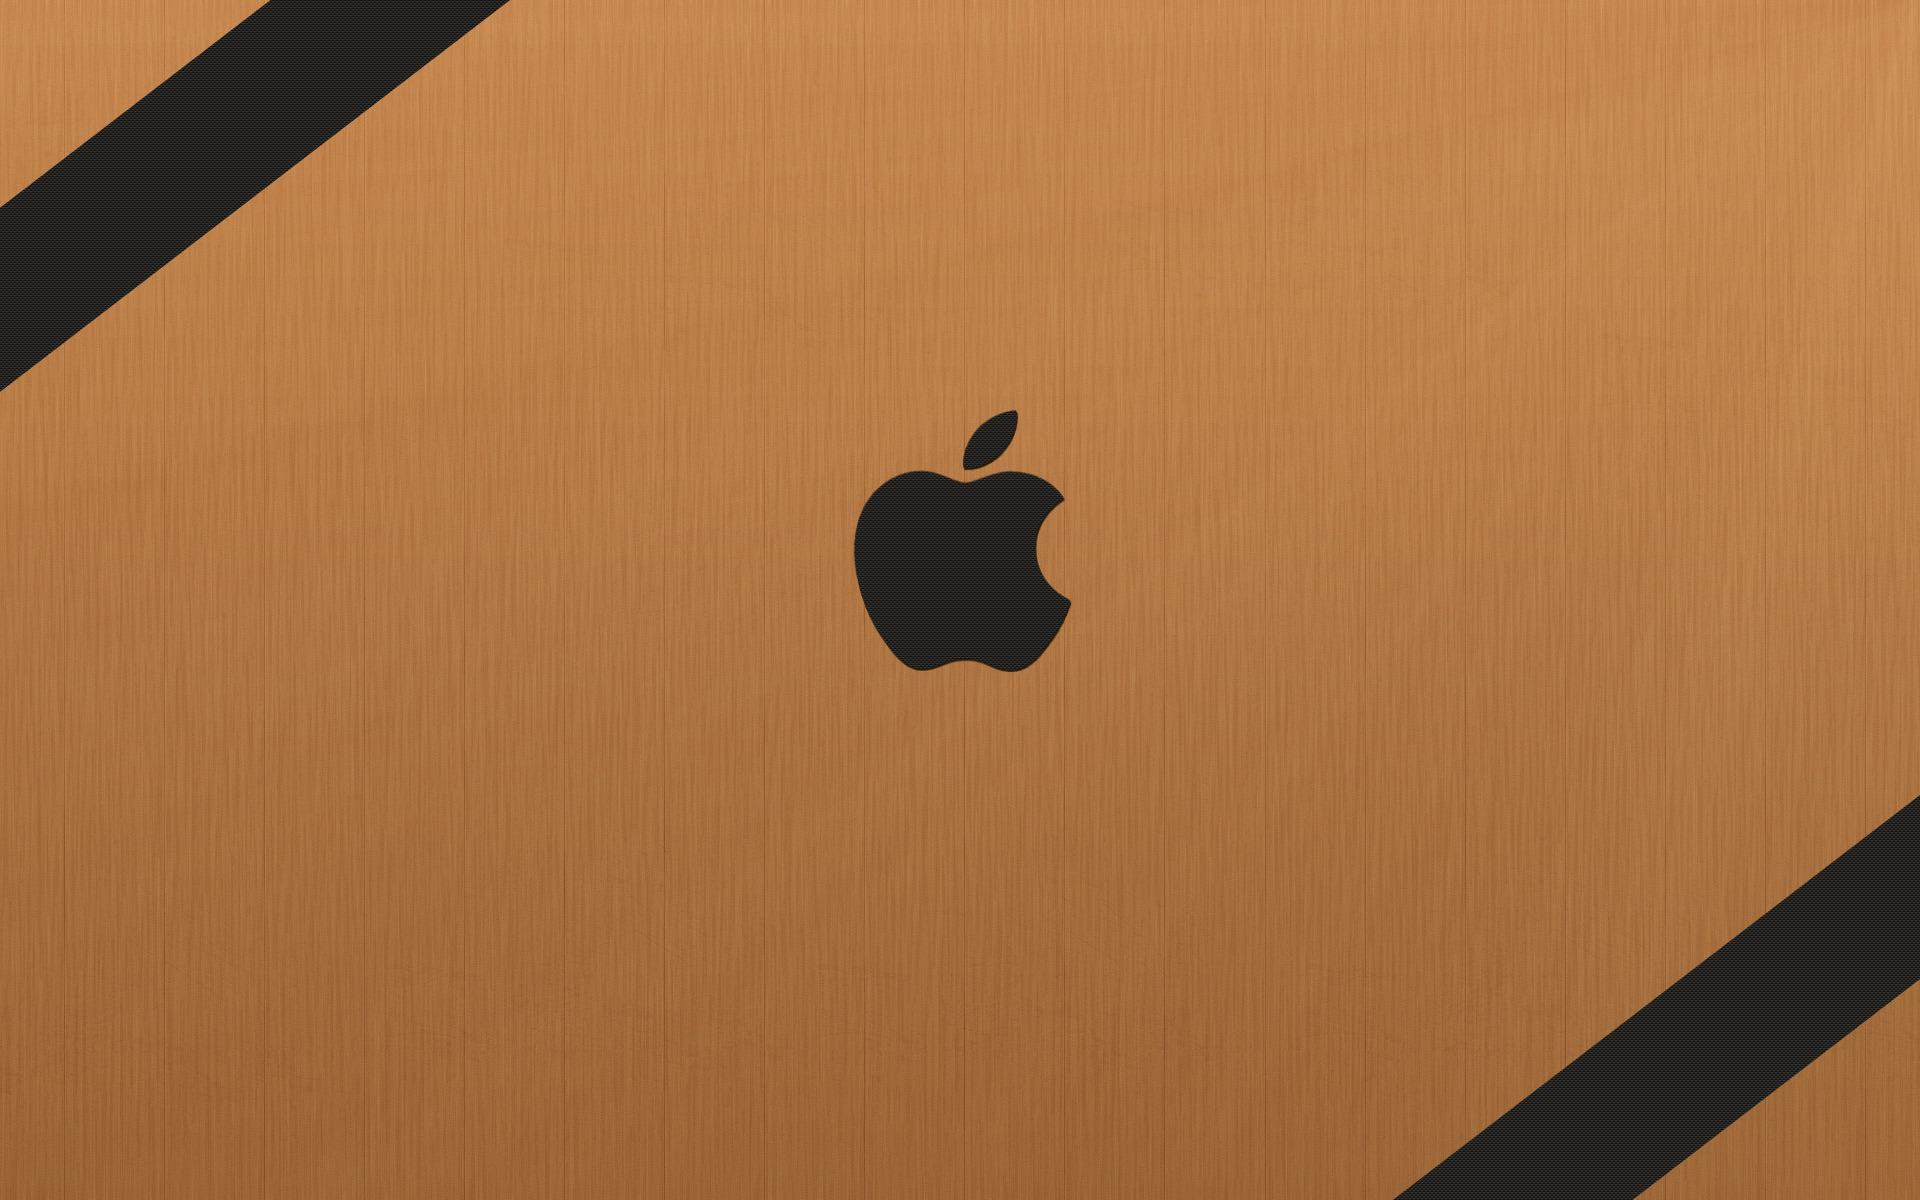 ���� Hi-tech, apple 1920x1200